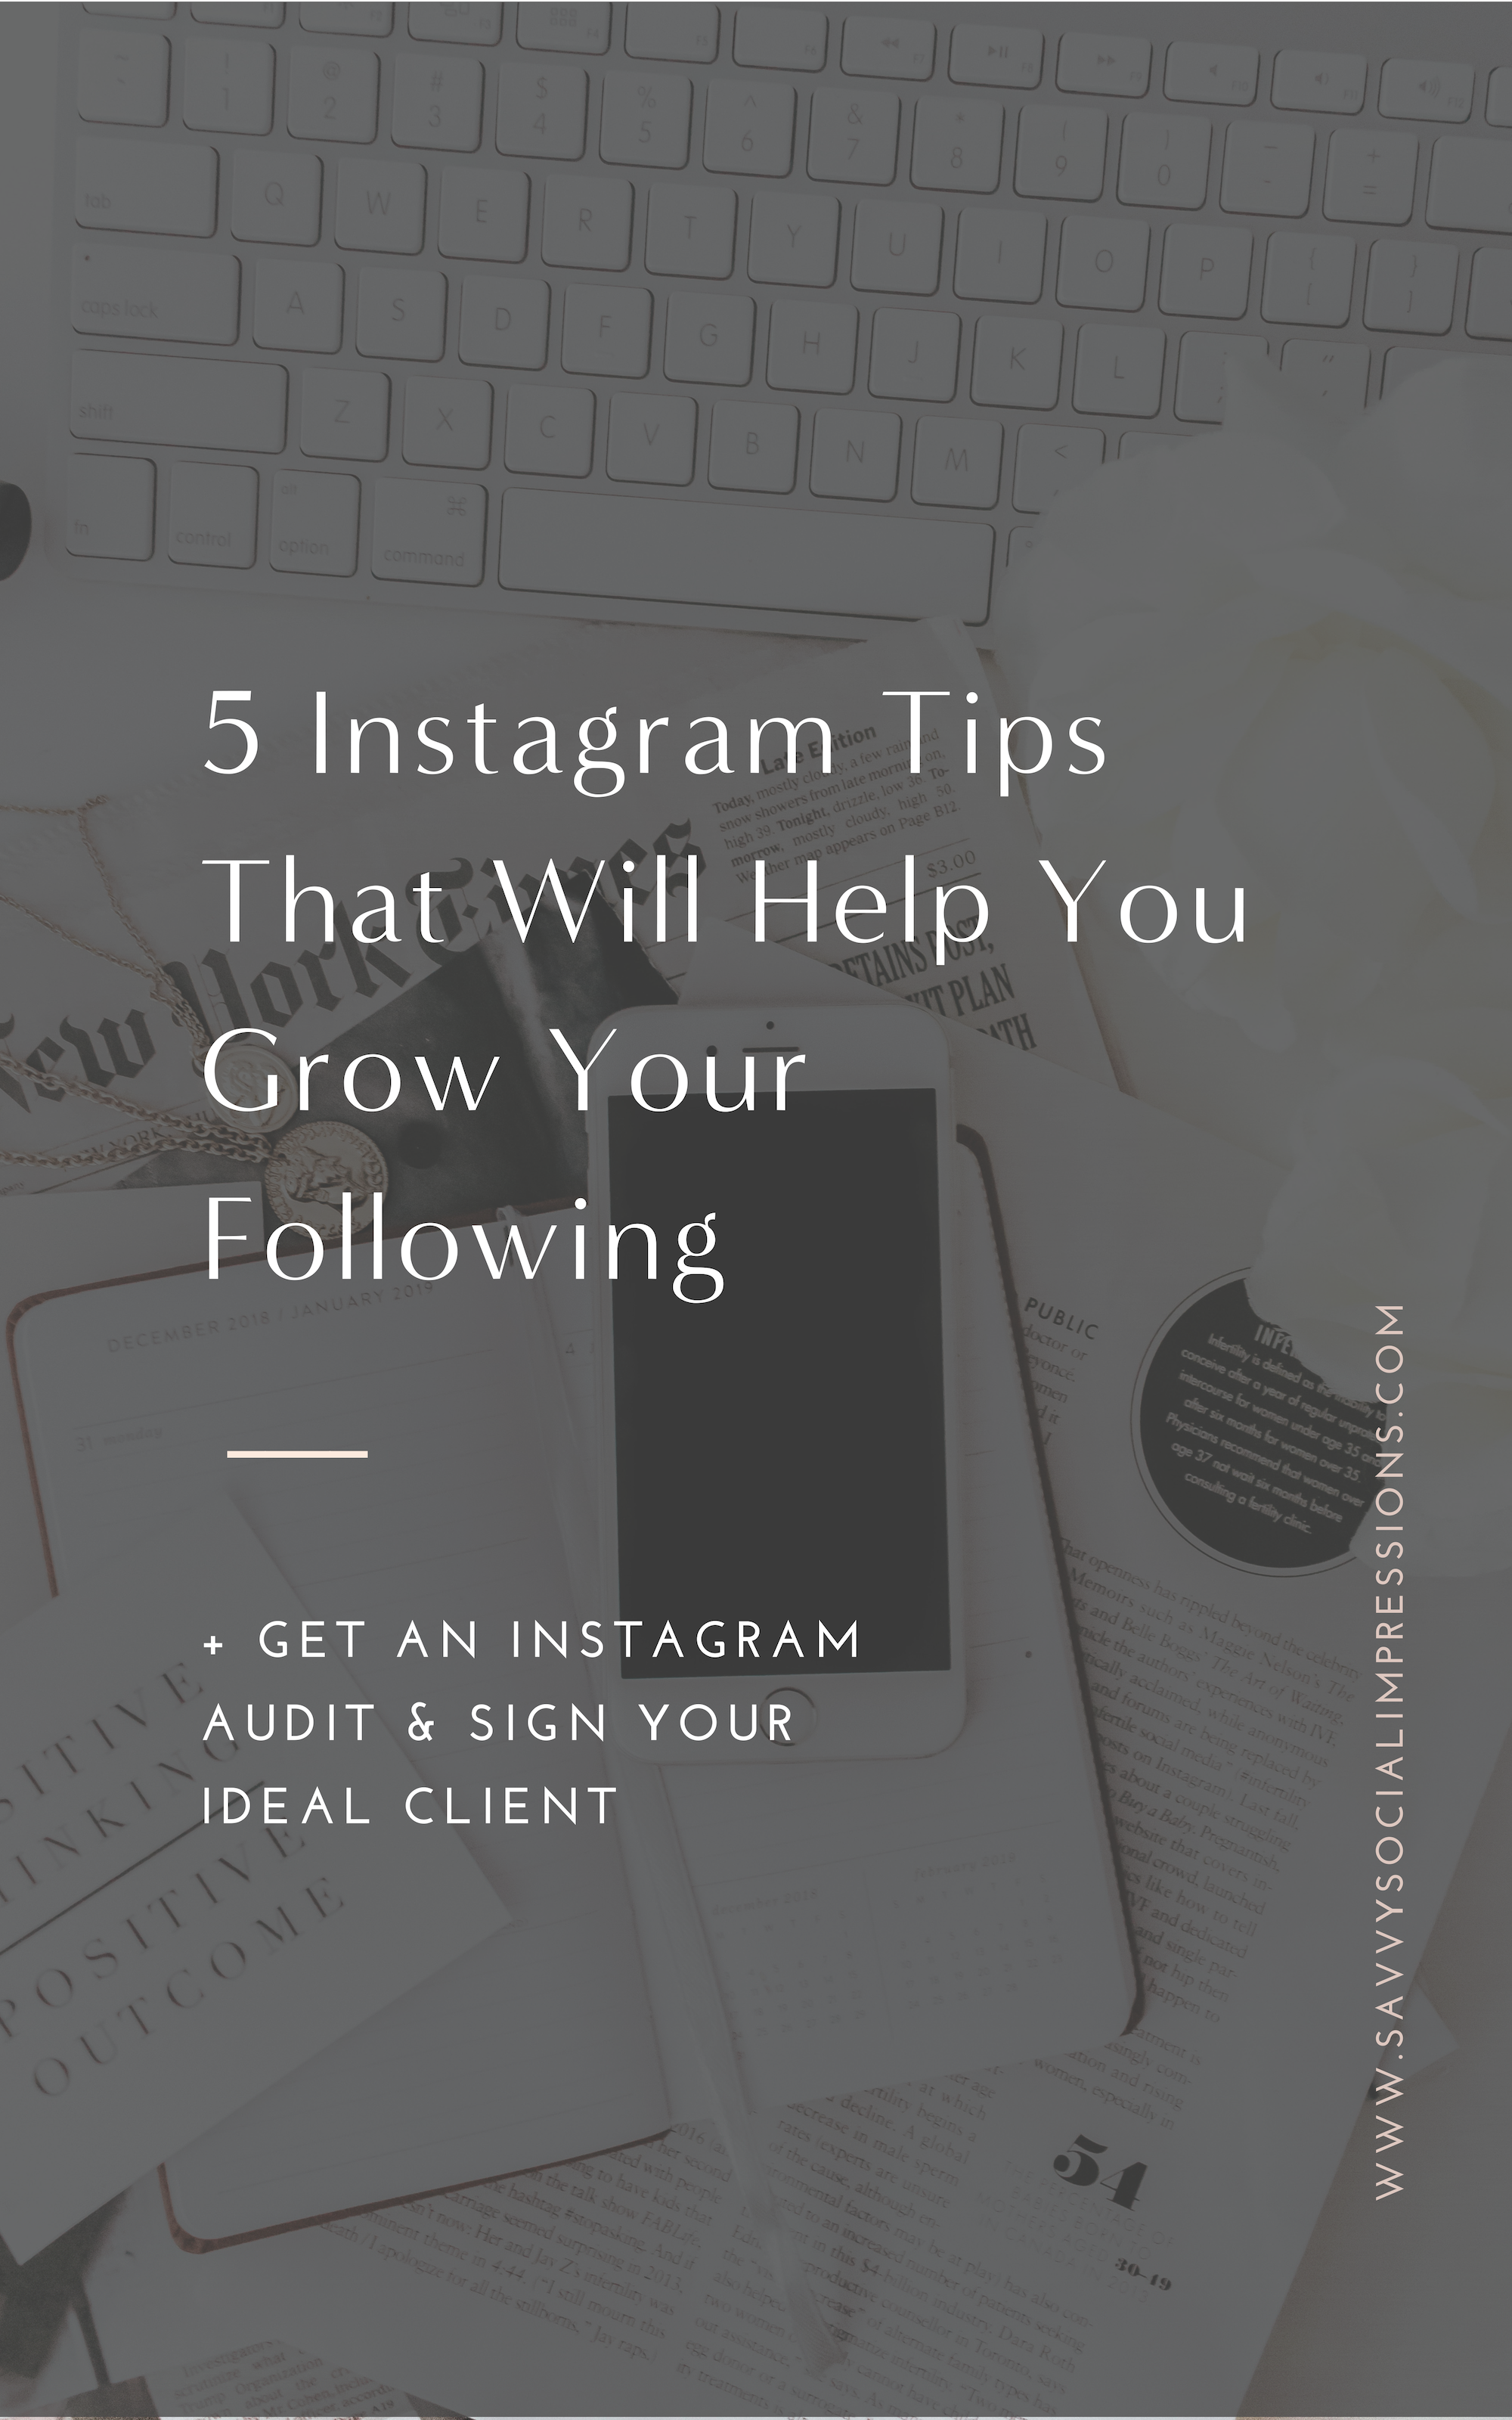 5 Instagram Tips That Will Help You Grow Your Following.png